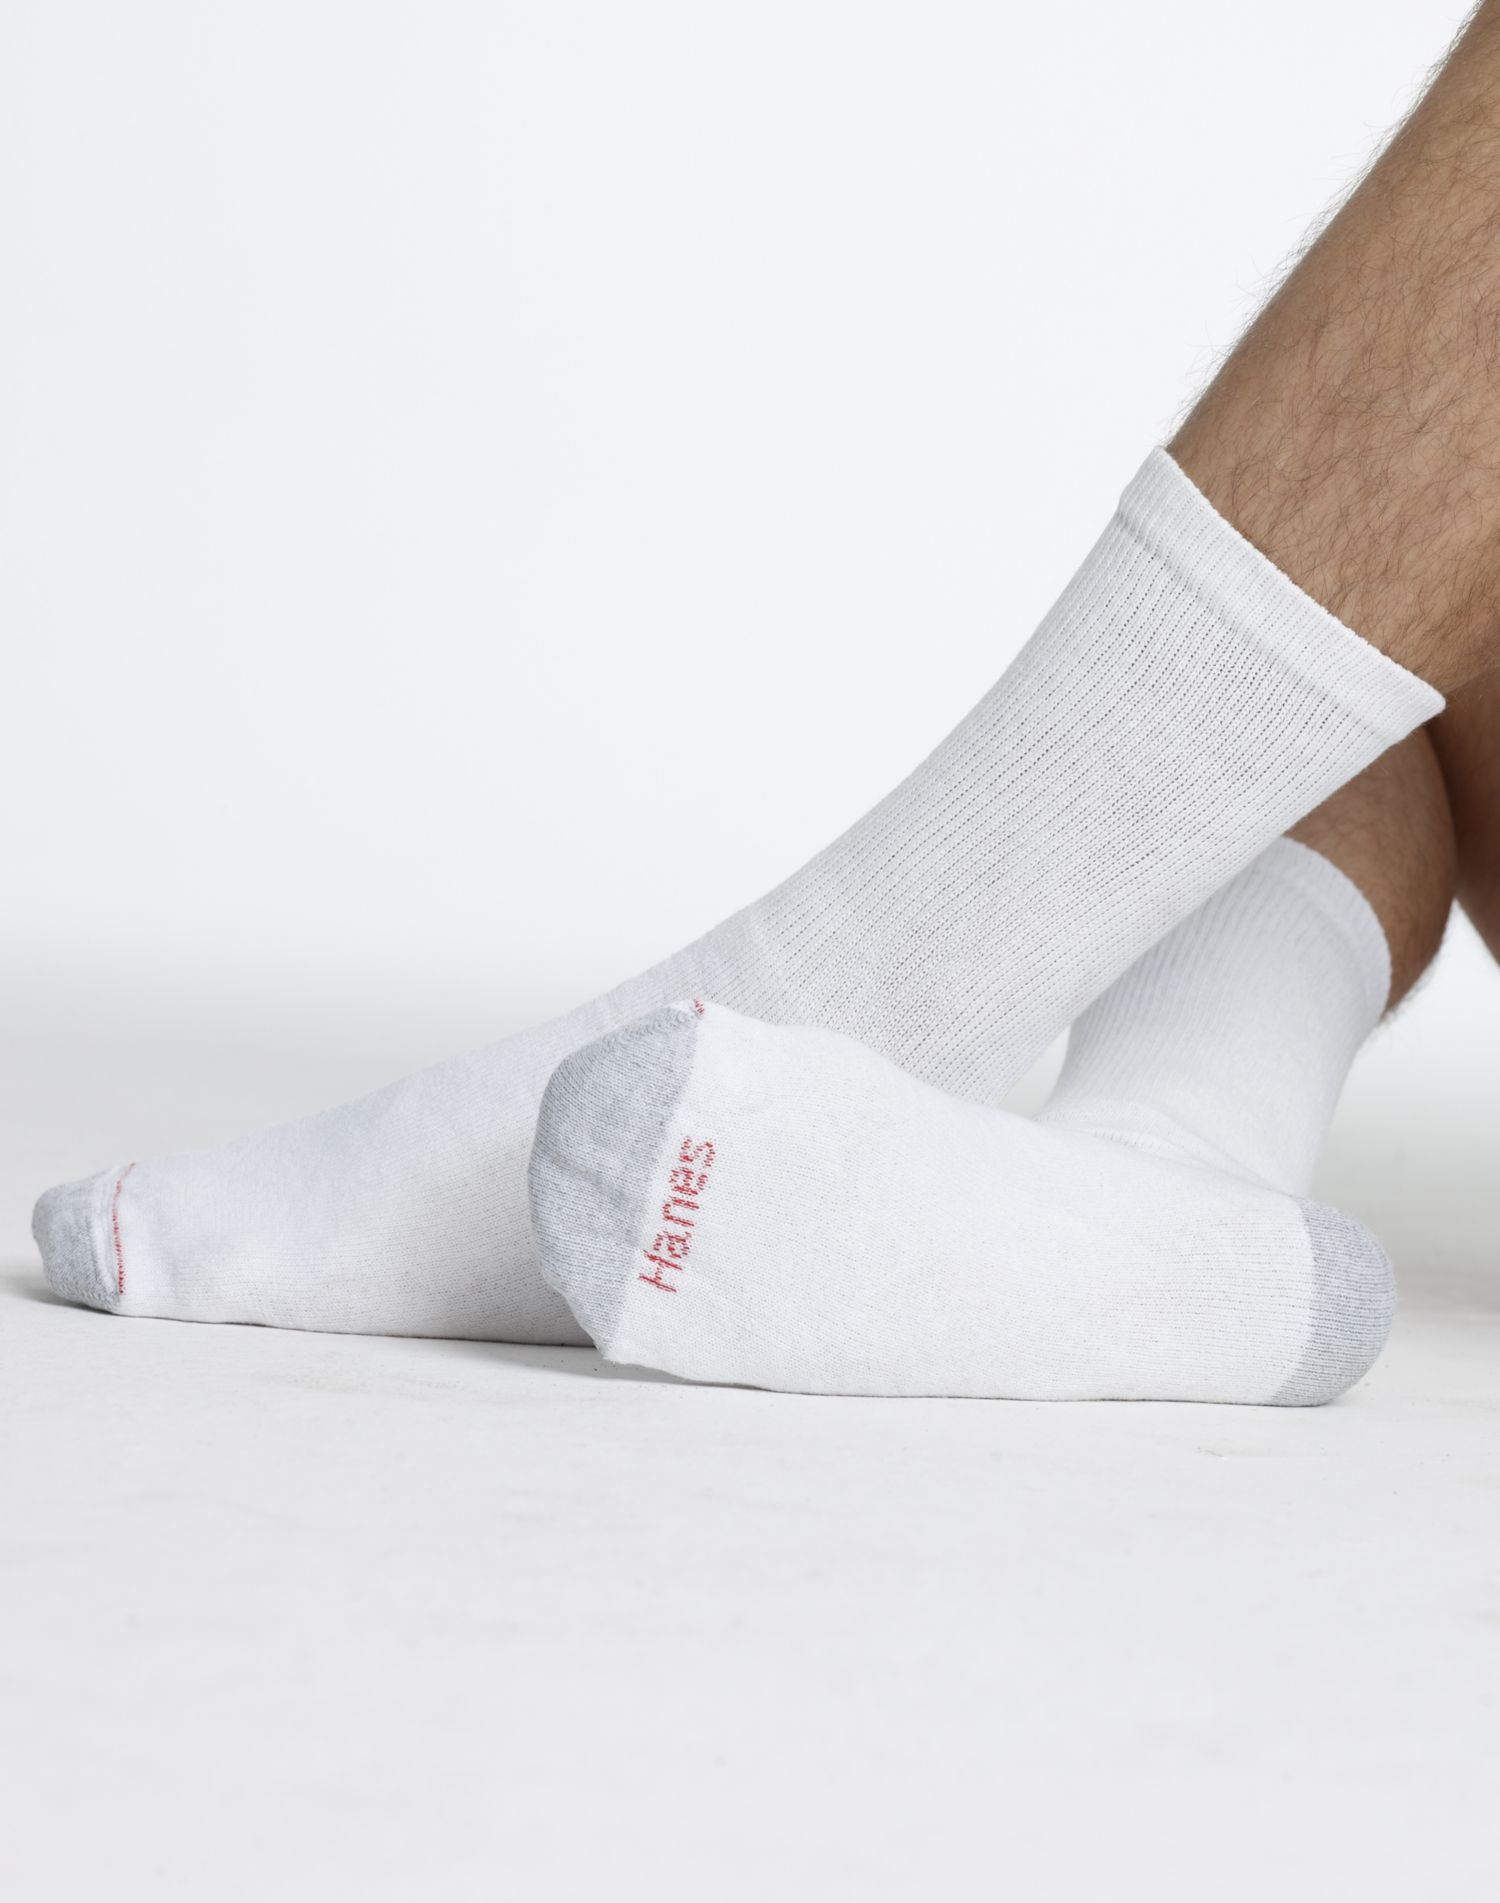 Shop for hanes socks mens online at Target. Free shipping & returns and save 5% every day with your Target REDcard.